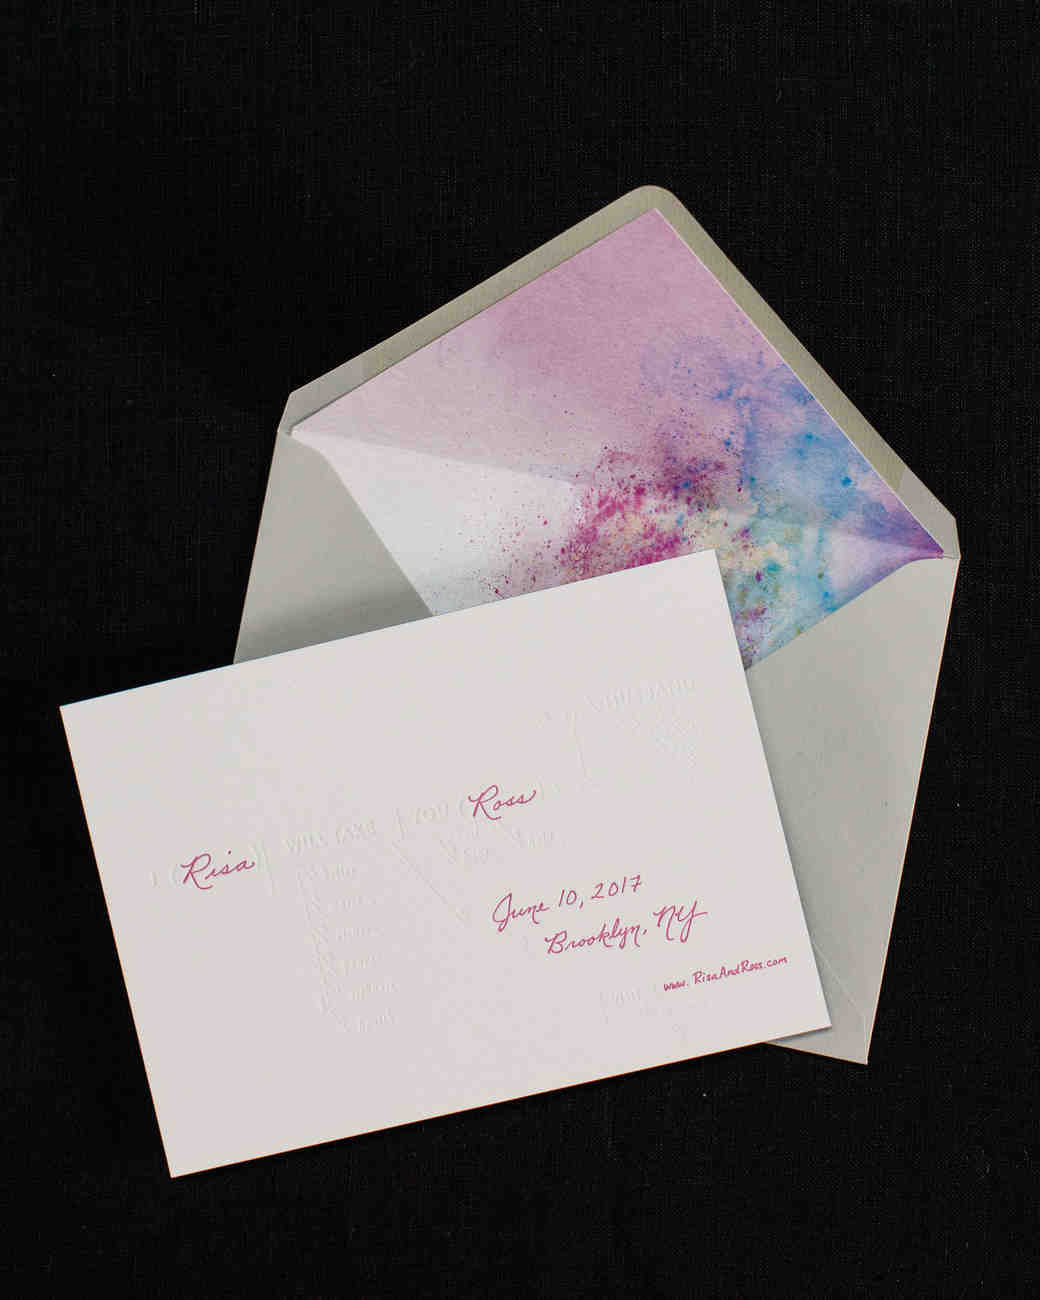 risa ross wedding brooklyn new york invitation